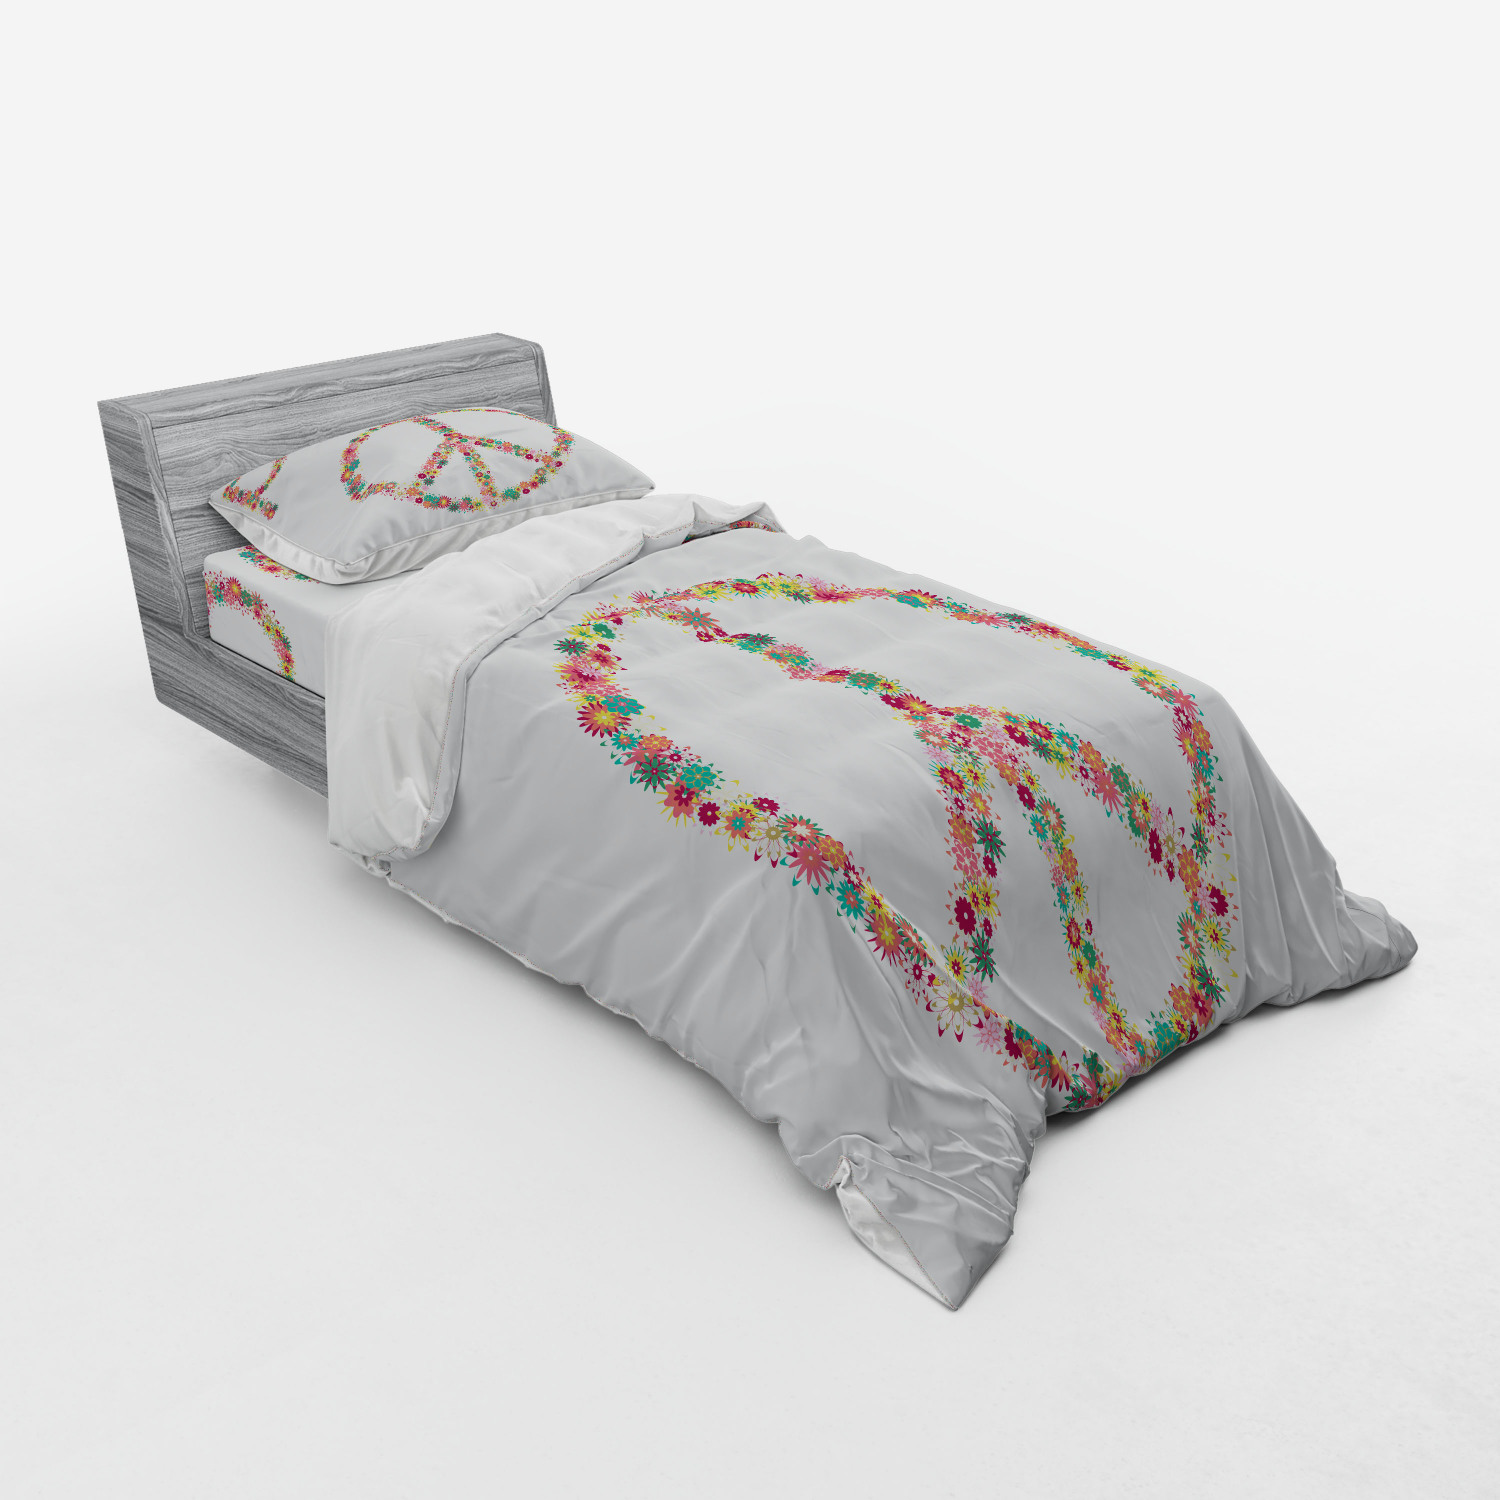 thumbnail 137 - Ambesonne Summer Bedding Set Duvet Cover Sham Fitted Sheet in 3 Sizes